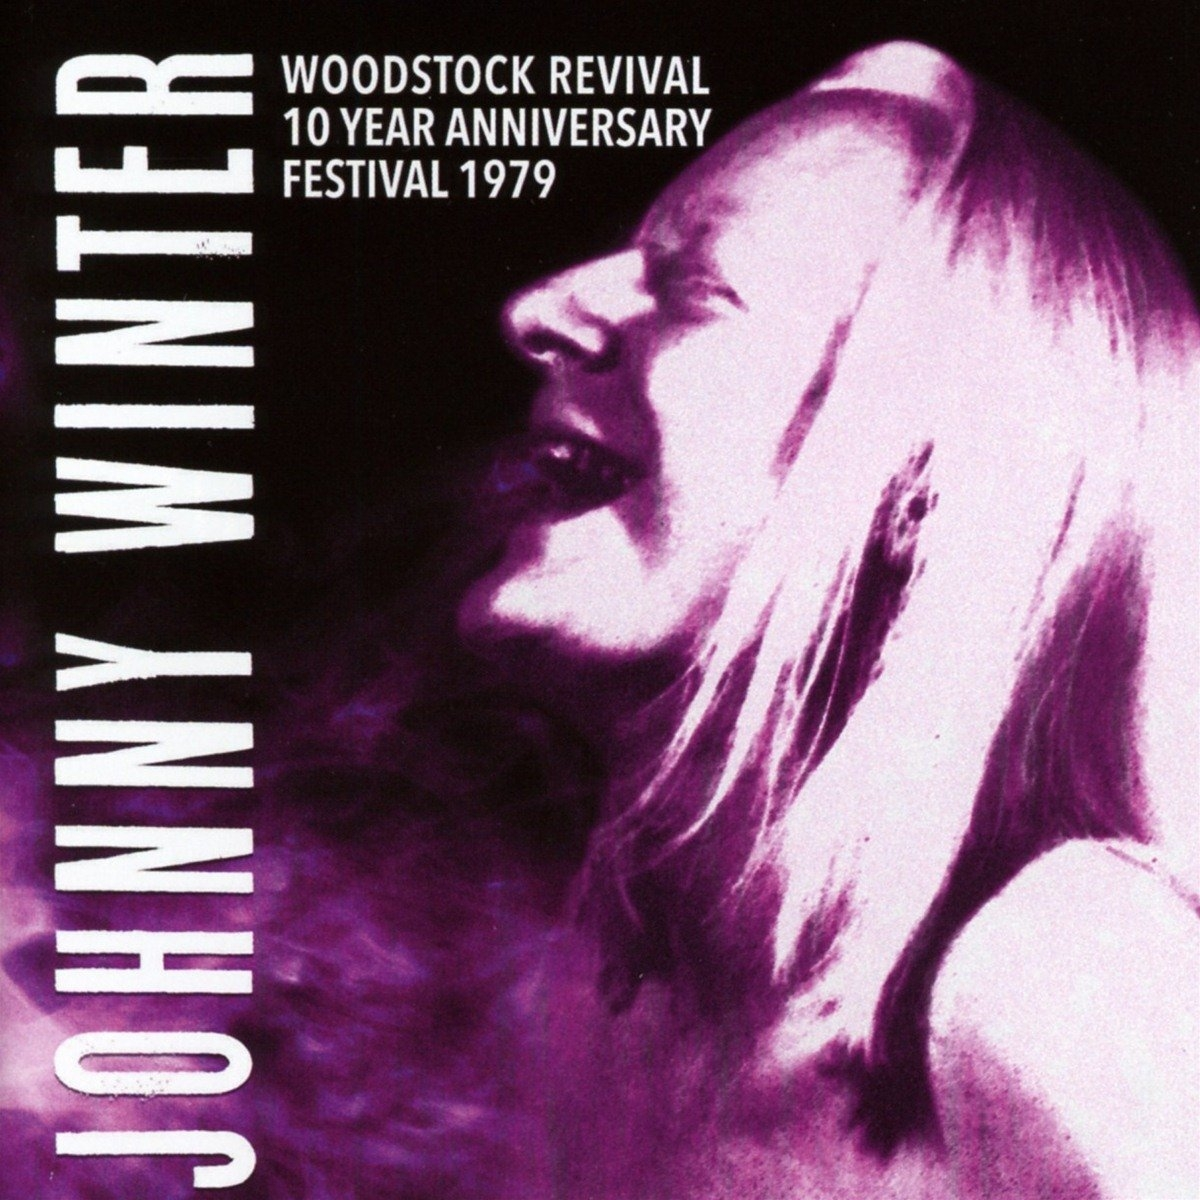 Woodstock Revival - 10th Anniversary (Vinyl)